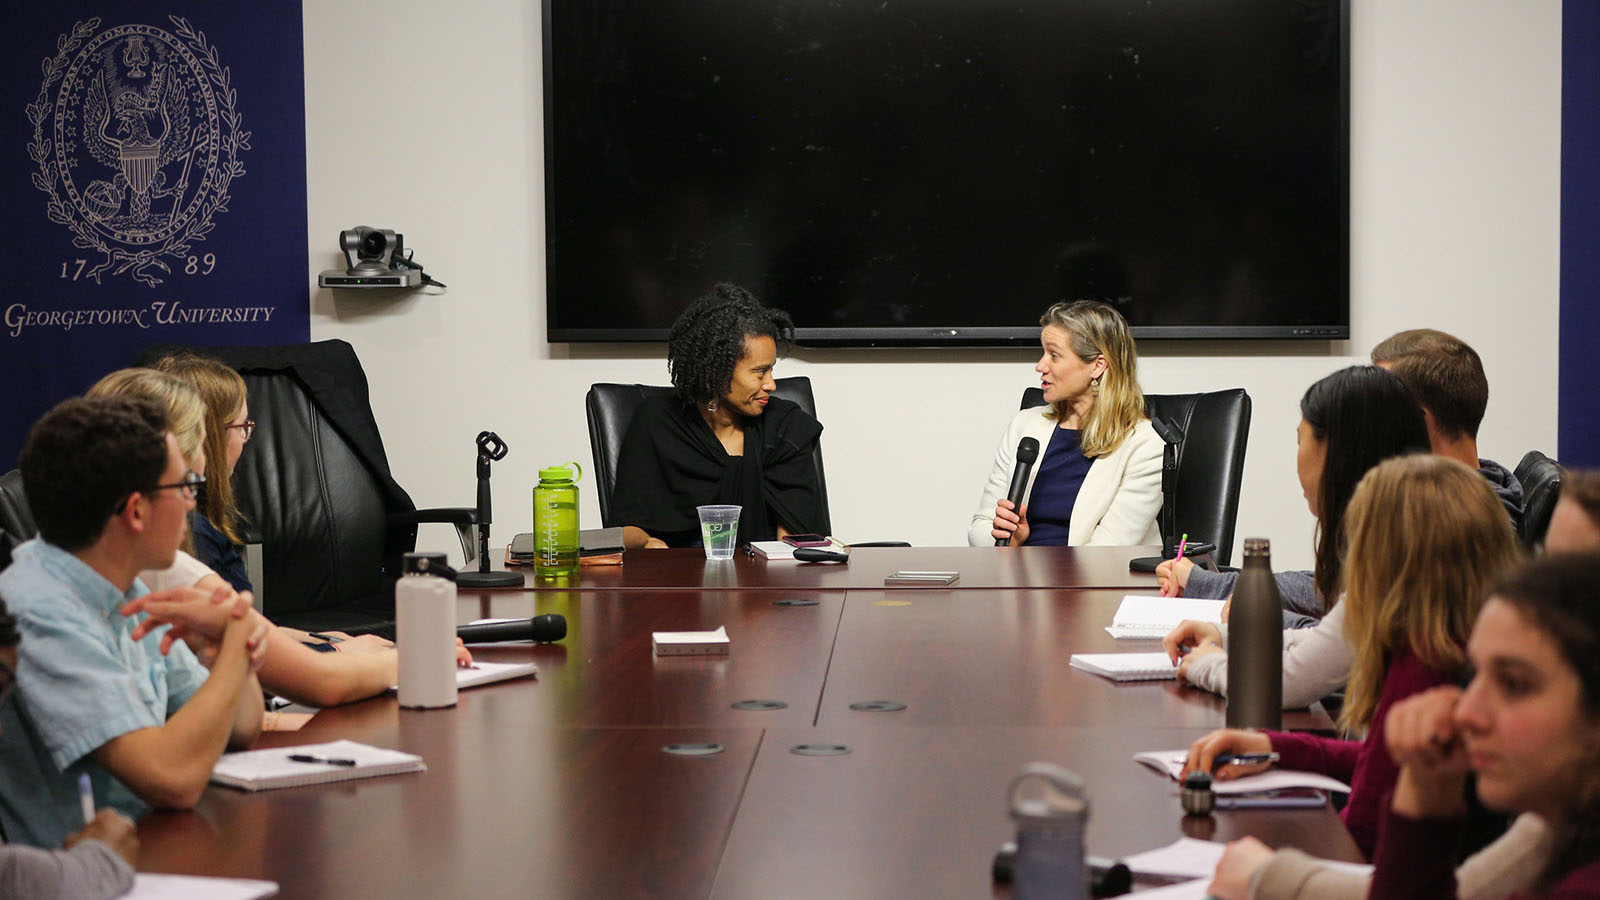 McKean leads a discussion on U.S. investments in global health for a class of Georgetown students, 2019.